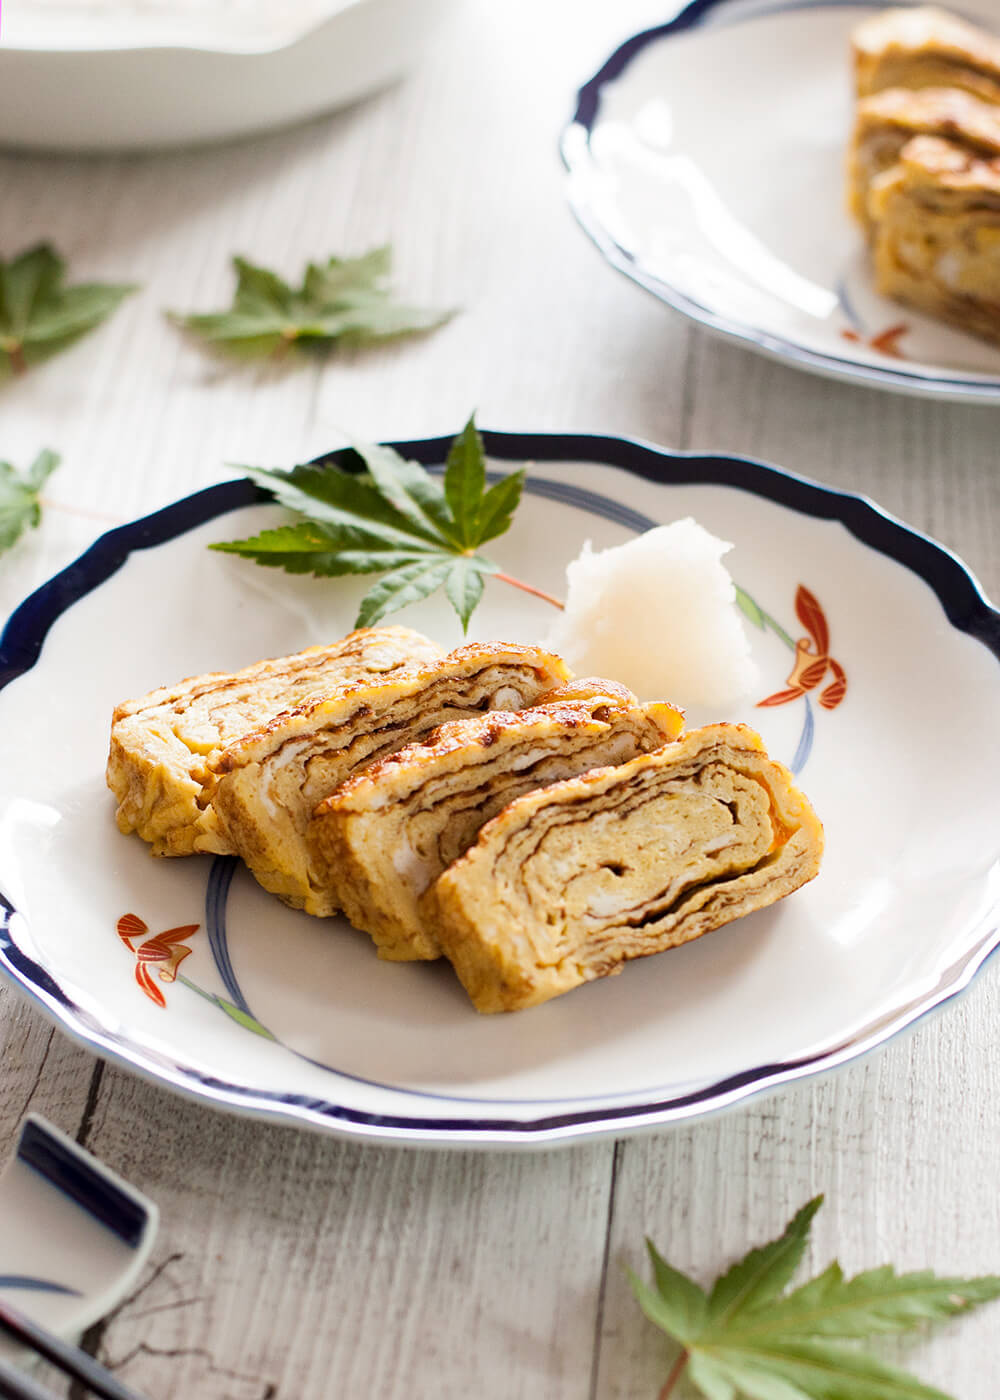 The typical egg dish in Japanese cuisine, dashimaki tamago (出し巻き卵, Japanese rolled omelette) is made by rolling thin layers of egg in the frypan. The beautiful layers of the egg when sliced, and the sweet dashi flavour make this omelette so unique.